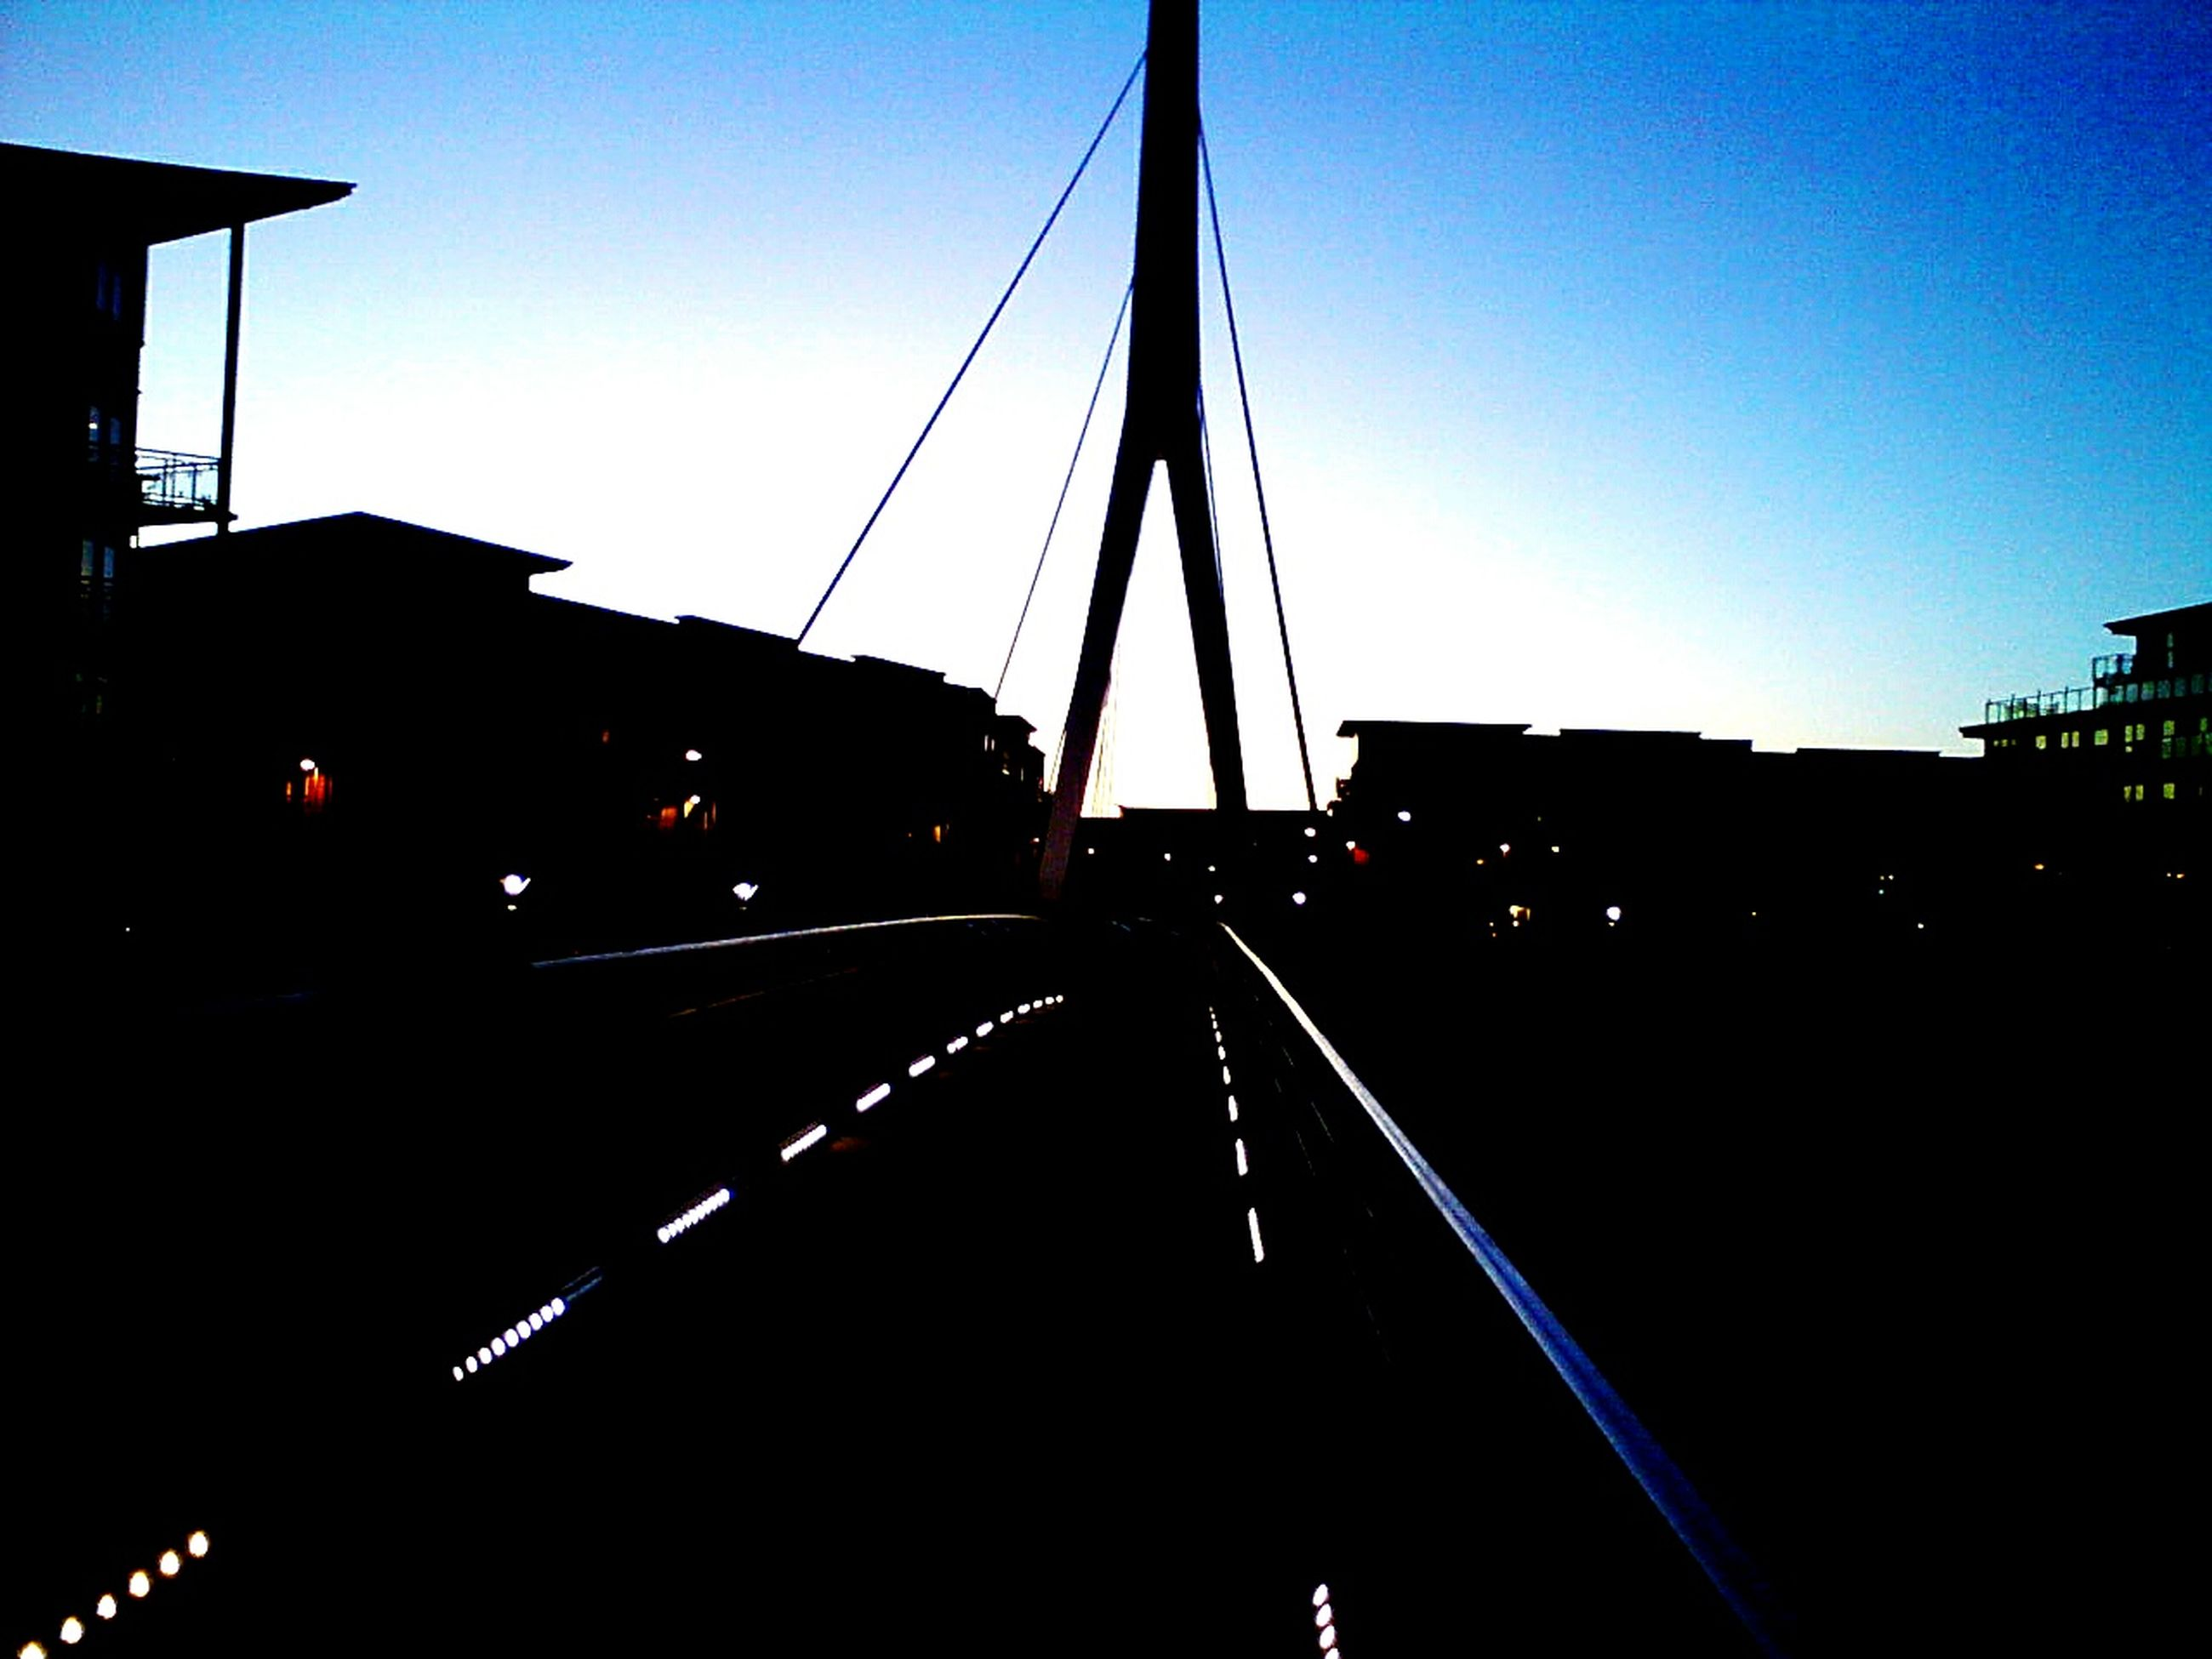 transportation, connection, clear sky, the way forward, built structure, architecture, railroad track, sunset, dusk, diminishing perspective, silhouette, sky, illuminated, blue, vanishing point, bridge - man made structure, copy space, rail transportation, building exterior, outdoors